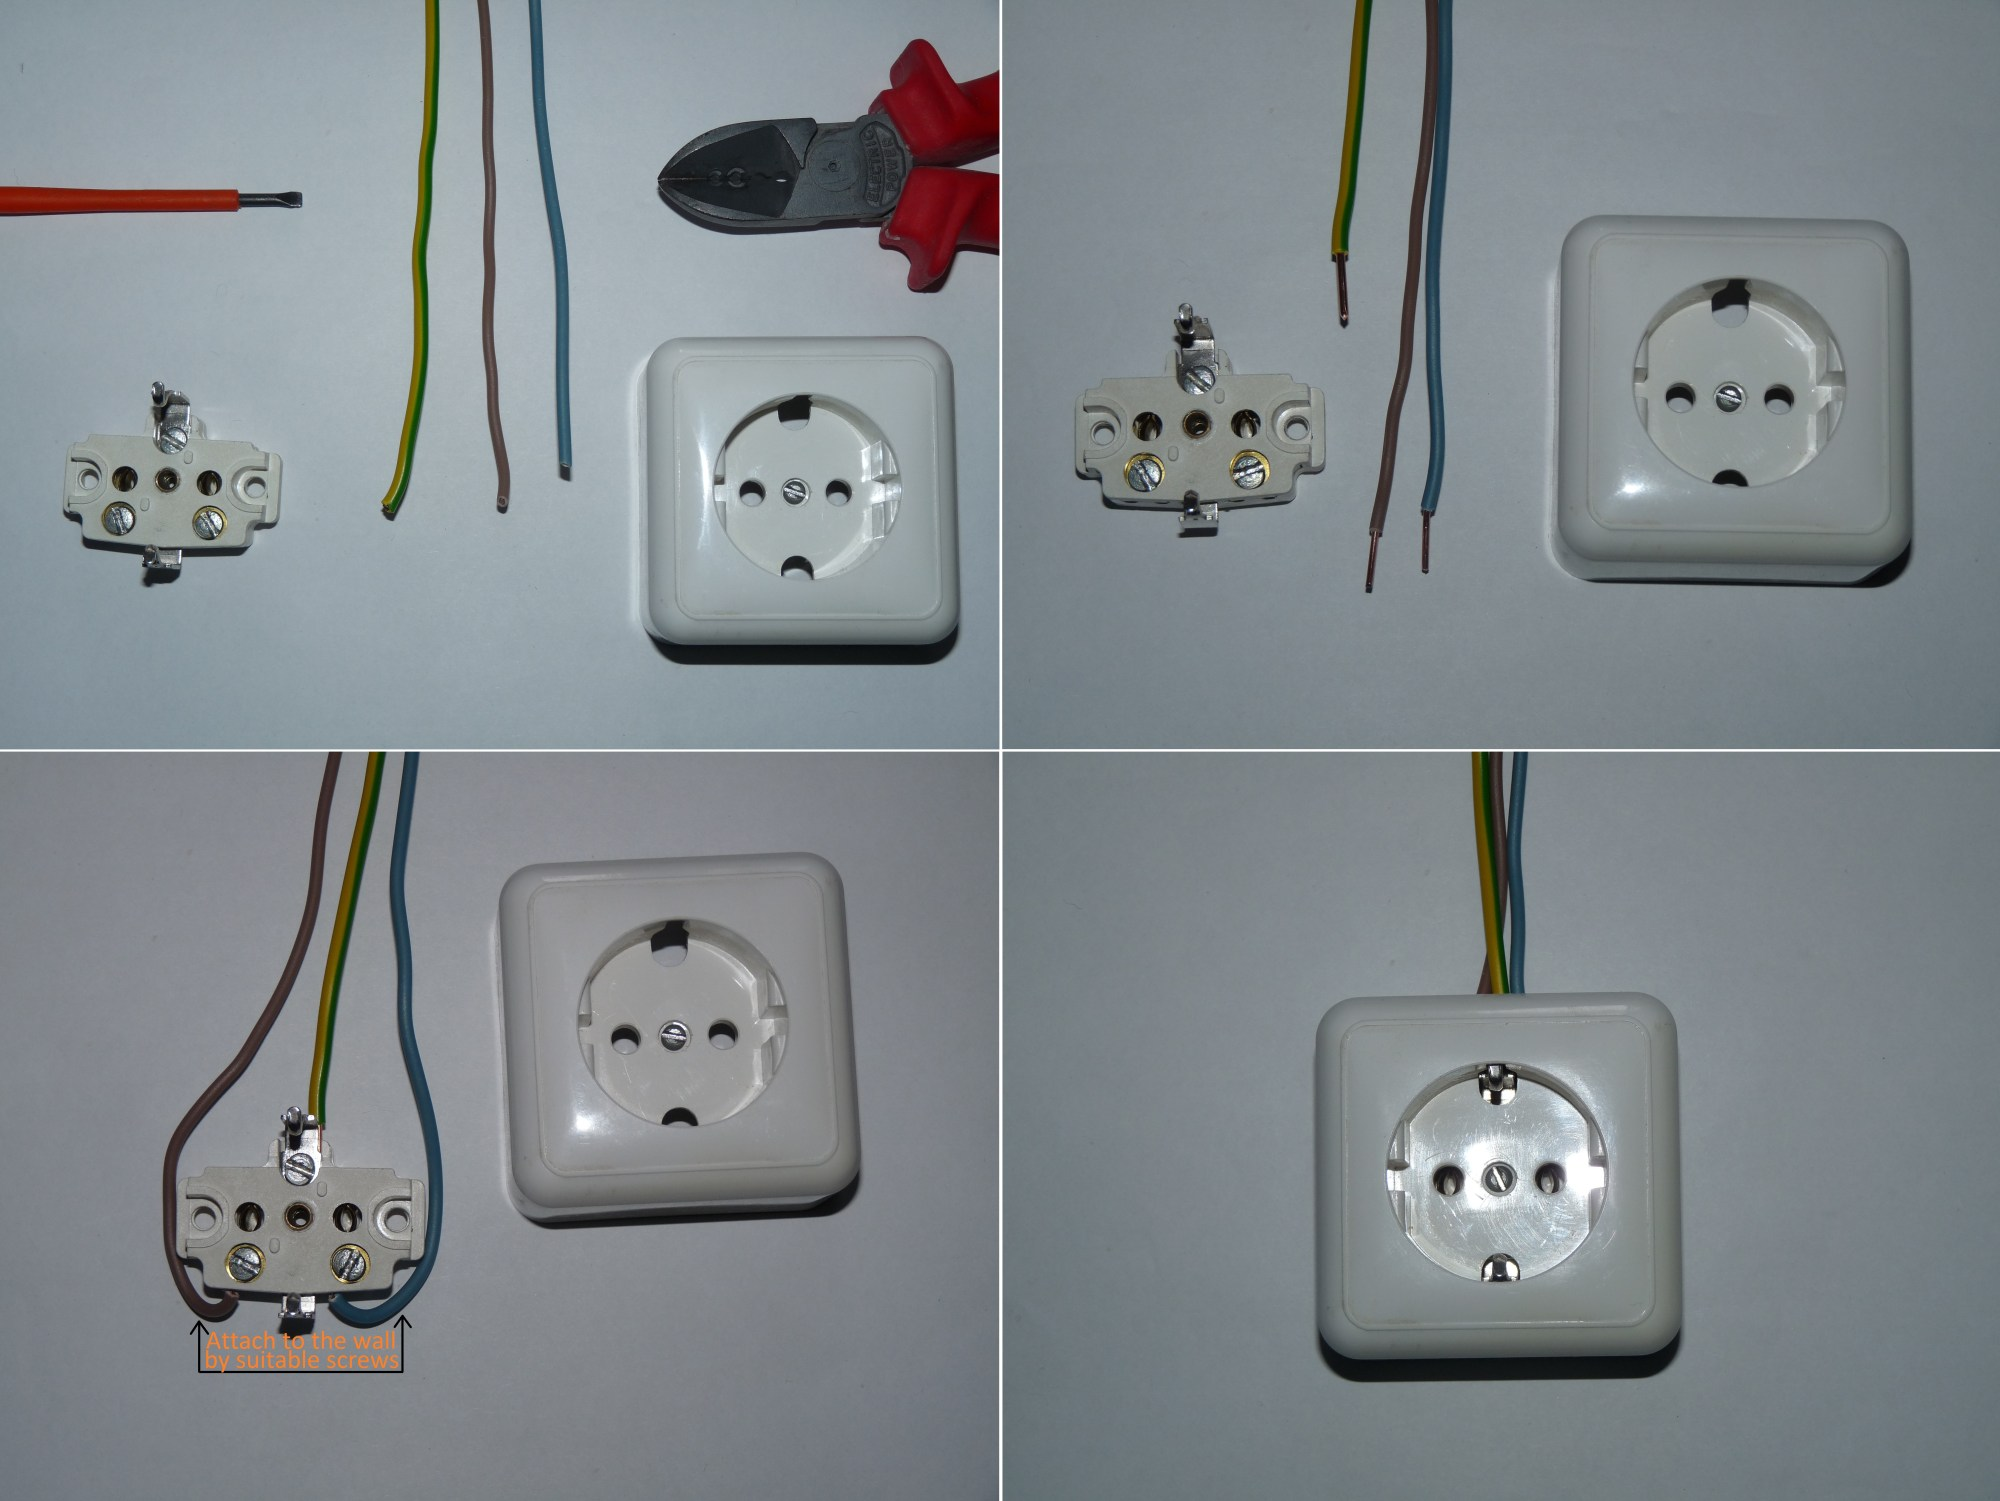 hight resolution of schuko plug wiring diagram wiring diagram portal 110v electrical plug wiring french schuko plug wiring diagram electrical